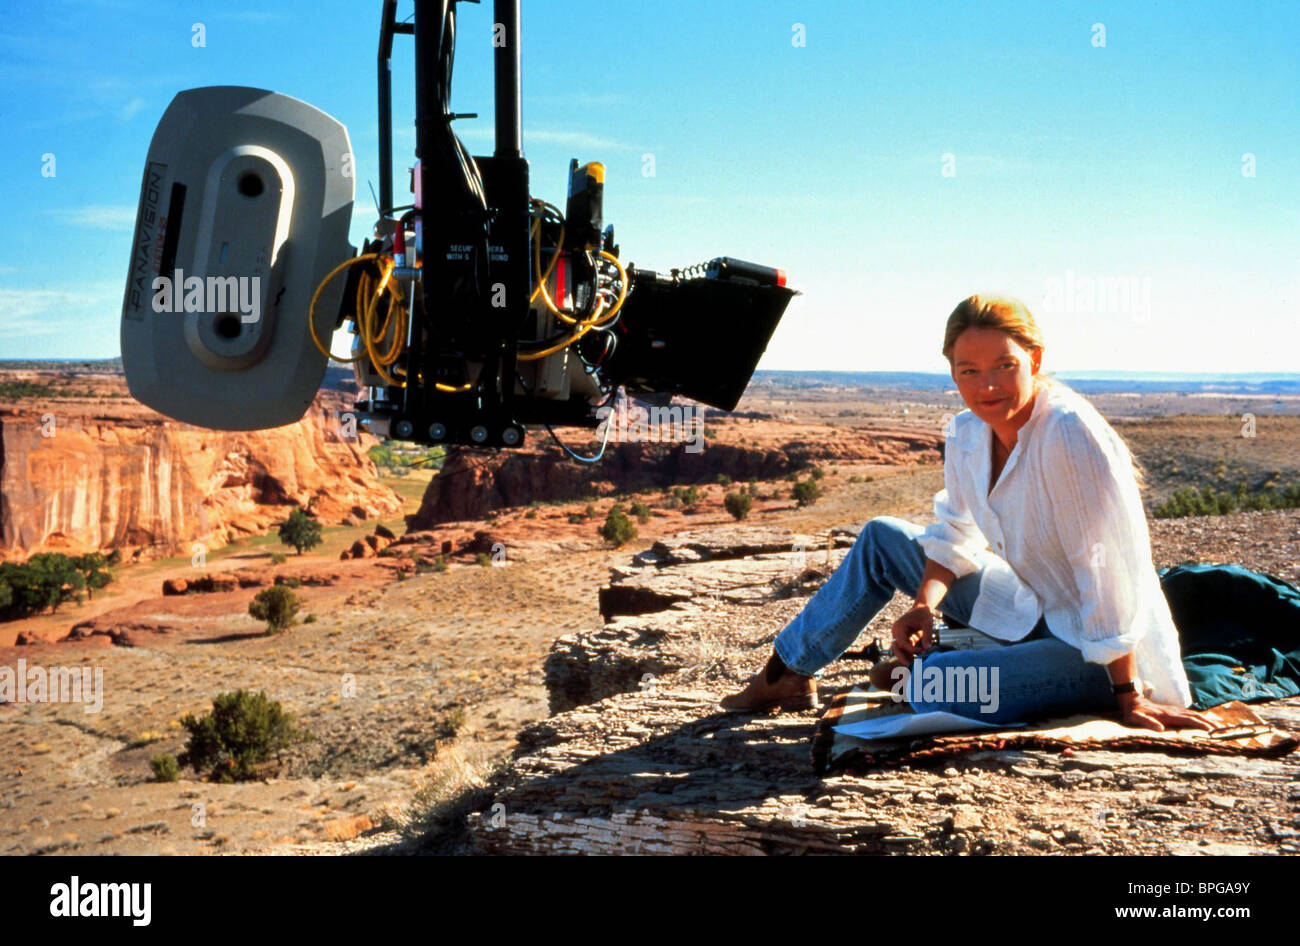 Contact Movie Jodie High Resolution Stock Photography And Images Alamy